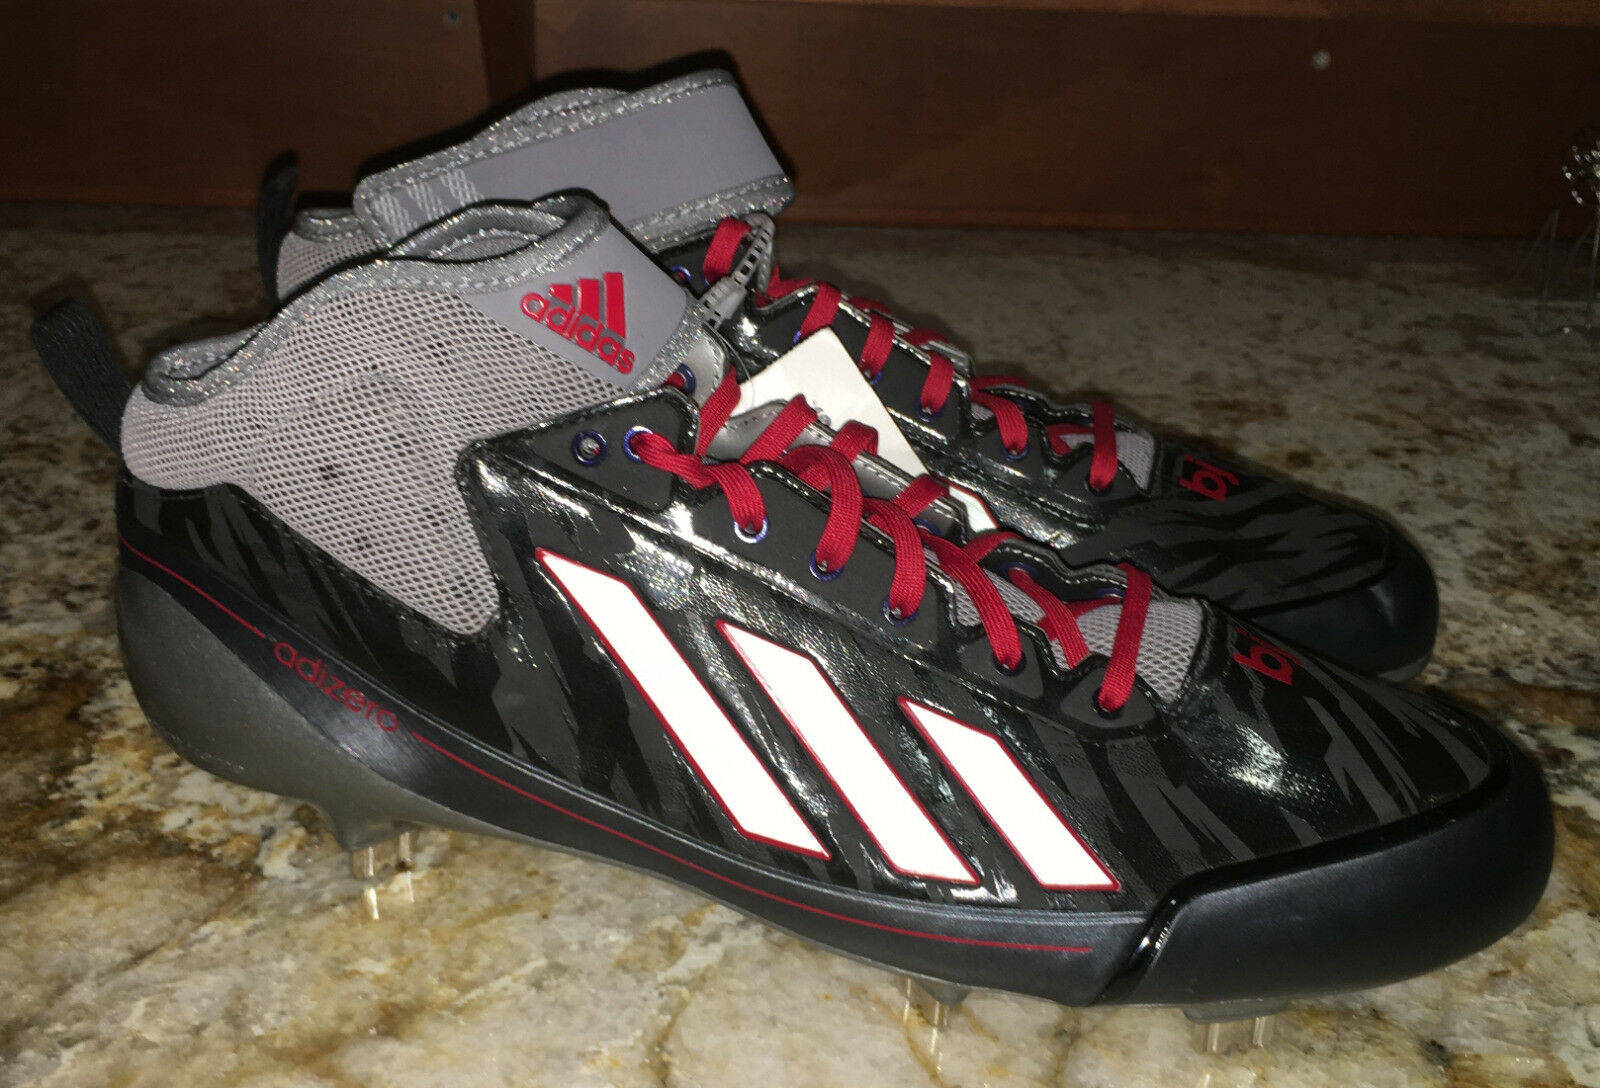 ADIDAS Adizero 5 TOOL 2.5 Mid Black Red NEW Baseball Metal Spikes Cleats NEW Red Mens 12 b1a883